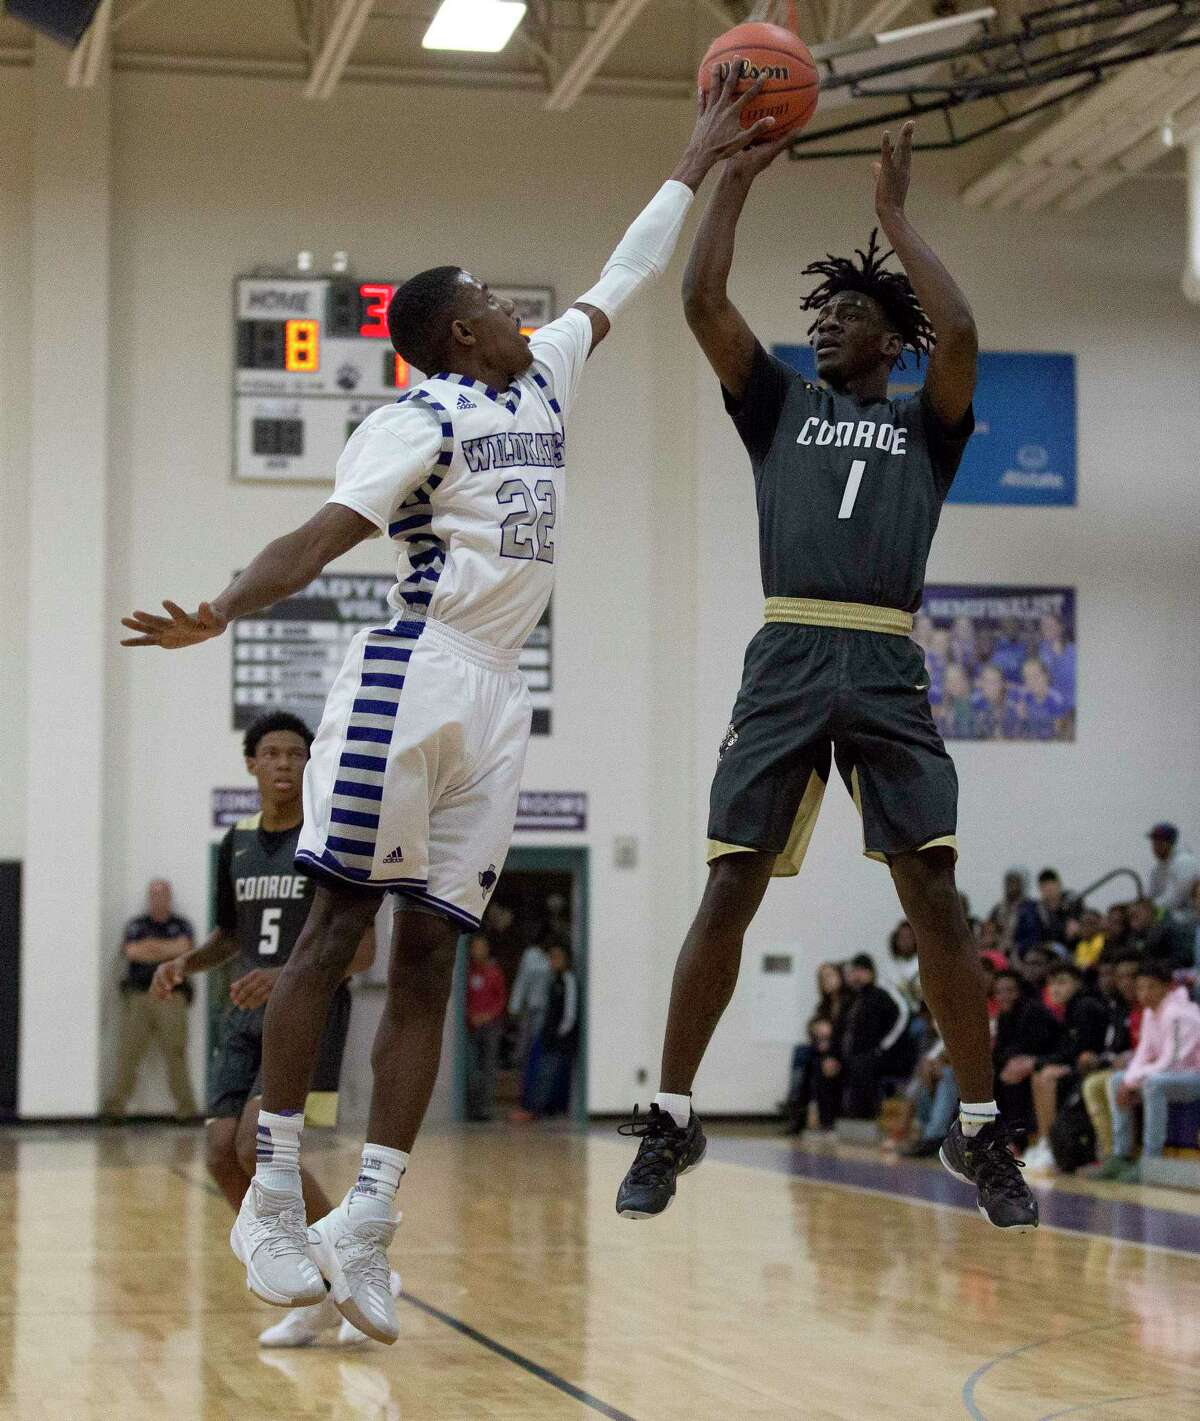 Willis guard Darius Mickens (22) blocks a shot by Conroe guard Jay Lewis (1) during the first quarter of a non-district high school boys basketball game at Willis High School, Tuesday, Jan. 2, 2017, in Willis.